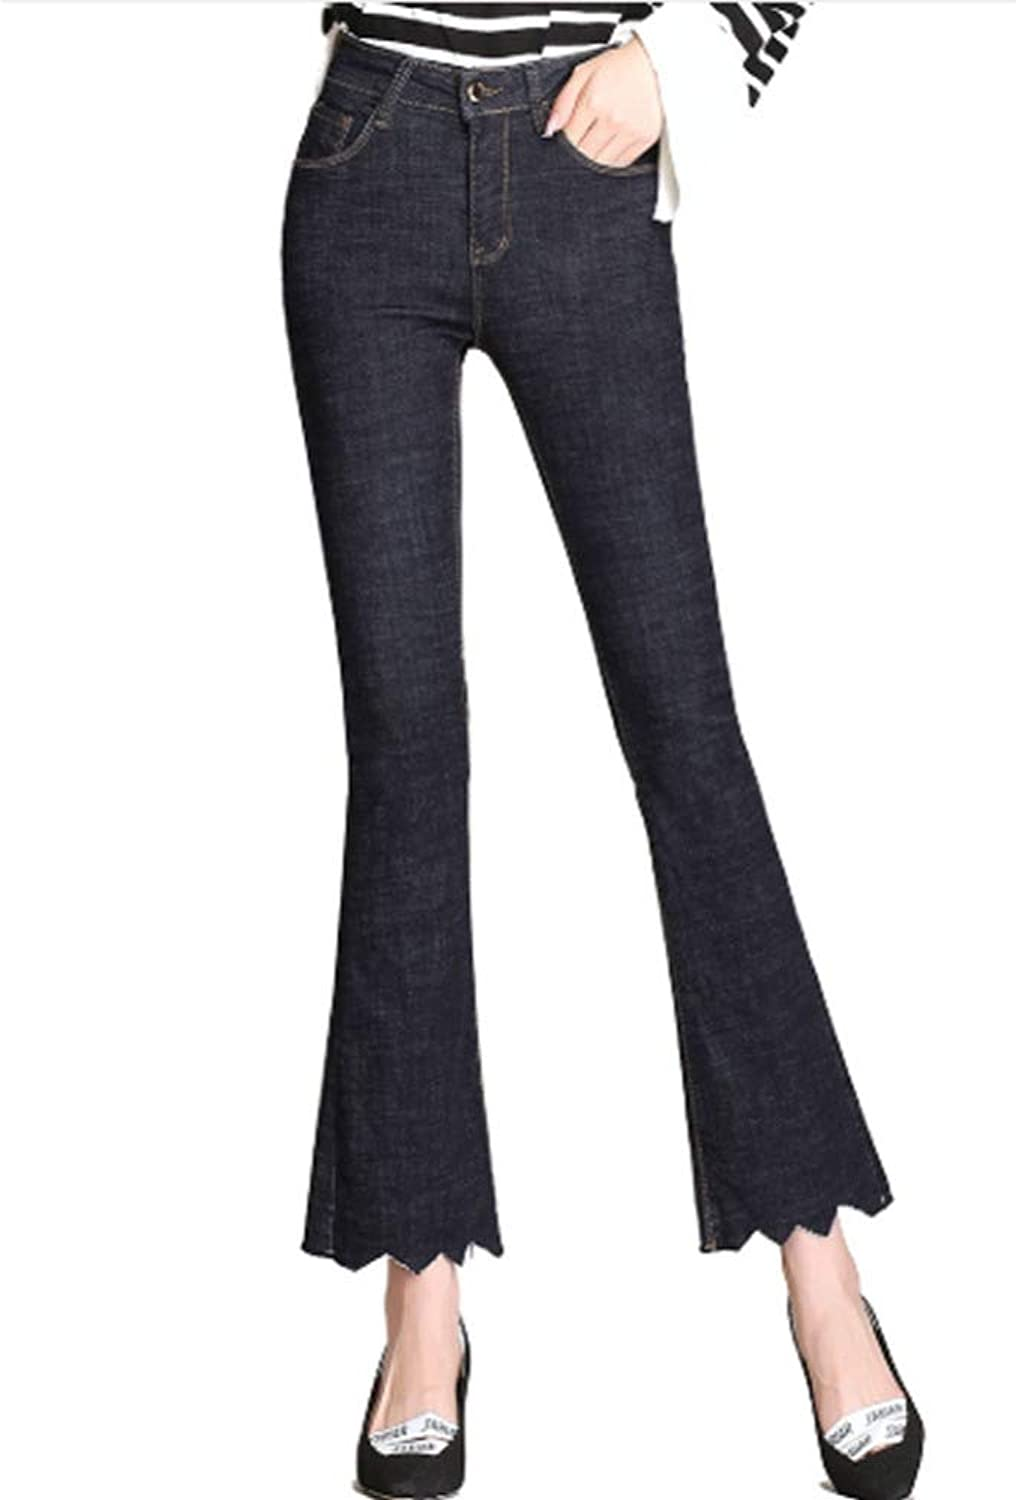 QJKai Women's High Waisted Flared Jeans Fashion Sexy Stretch Skinny Cowboy Long Pants Spring Black Plus Size Slim Flare Bootcut Pants